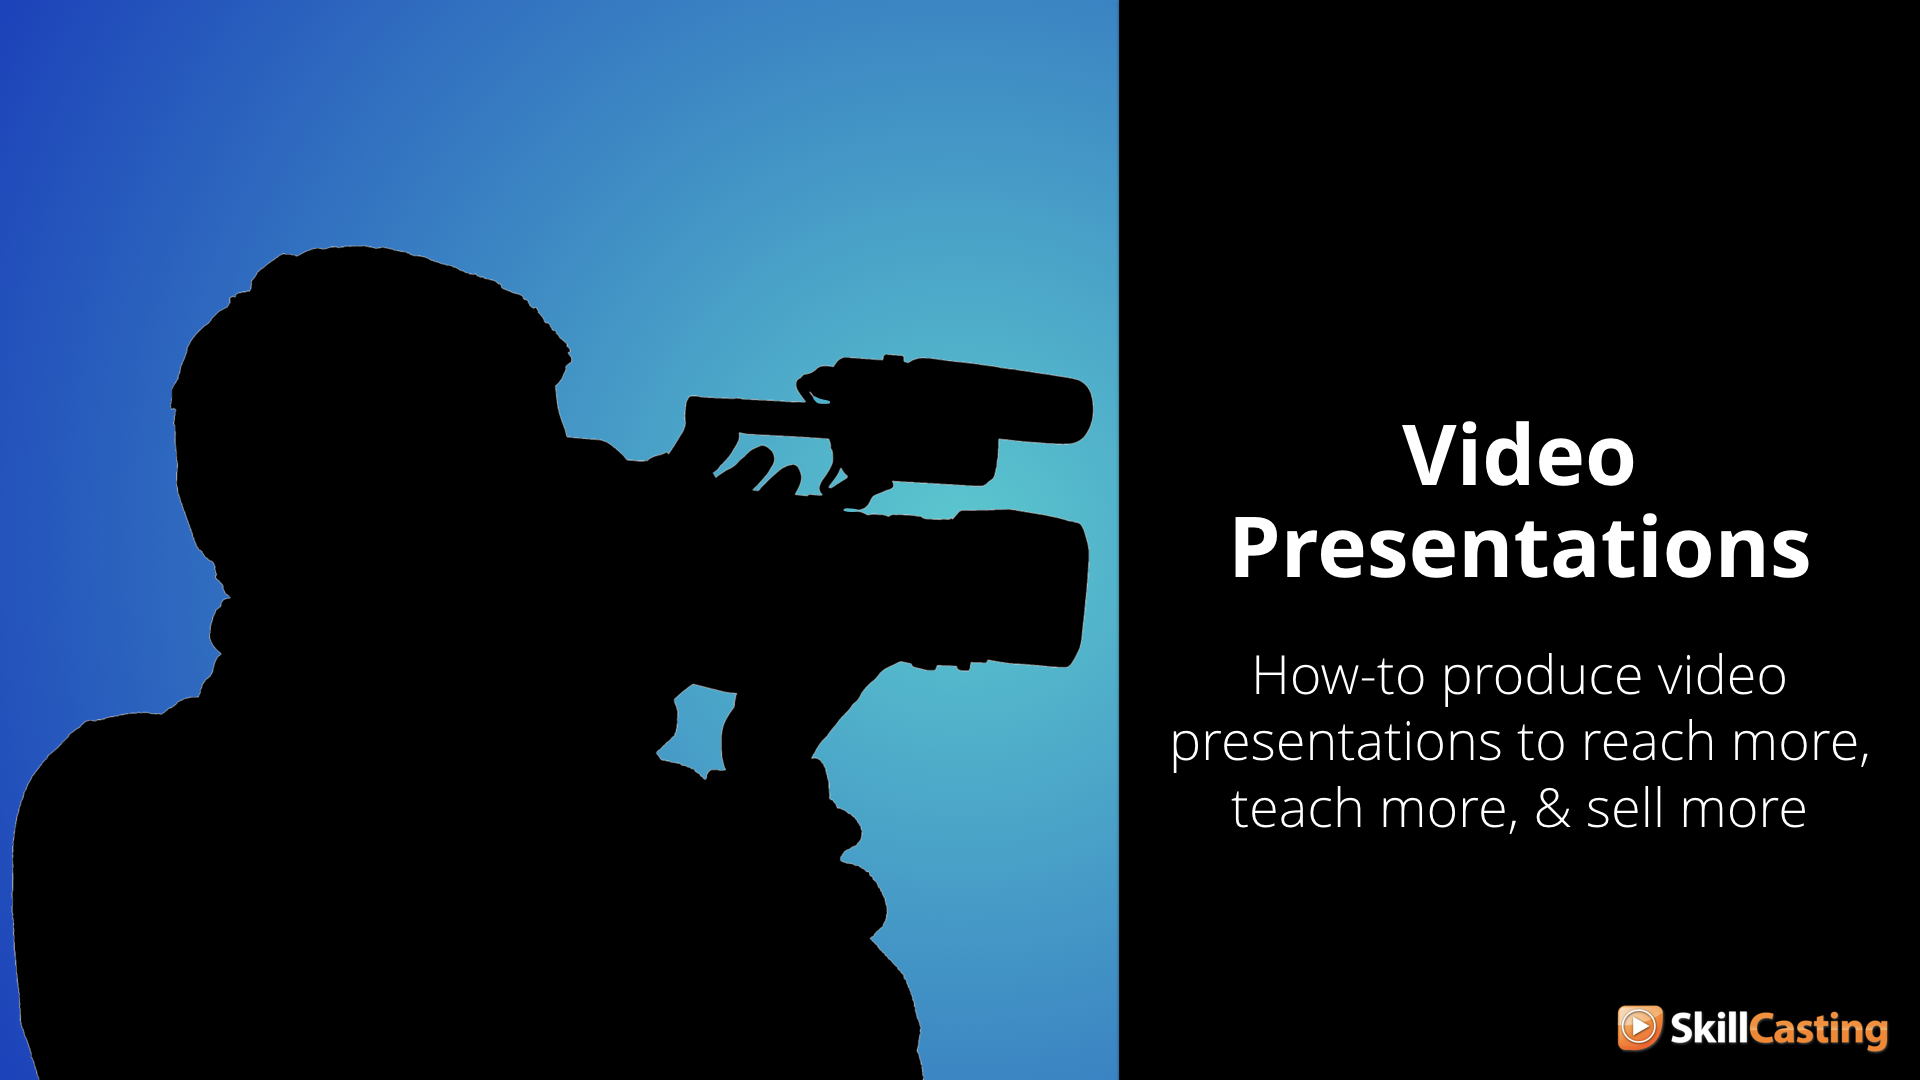 Learn more about creating  Video Presentations